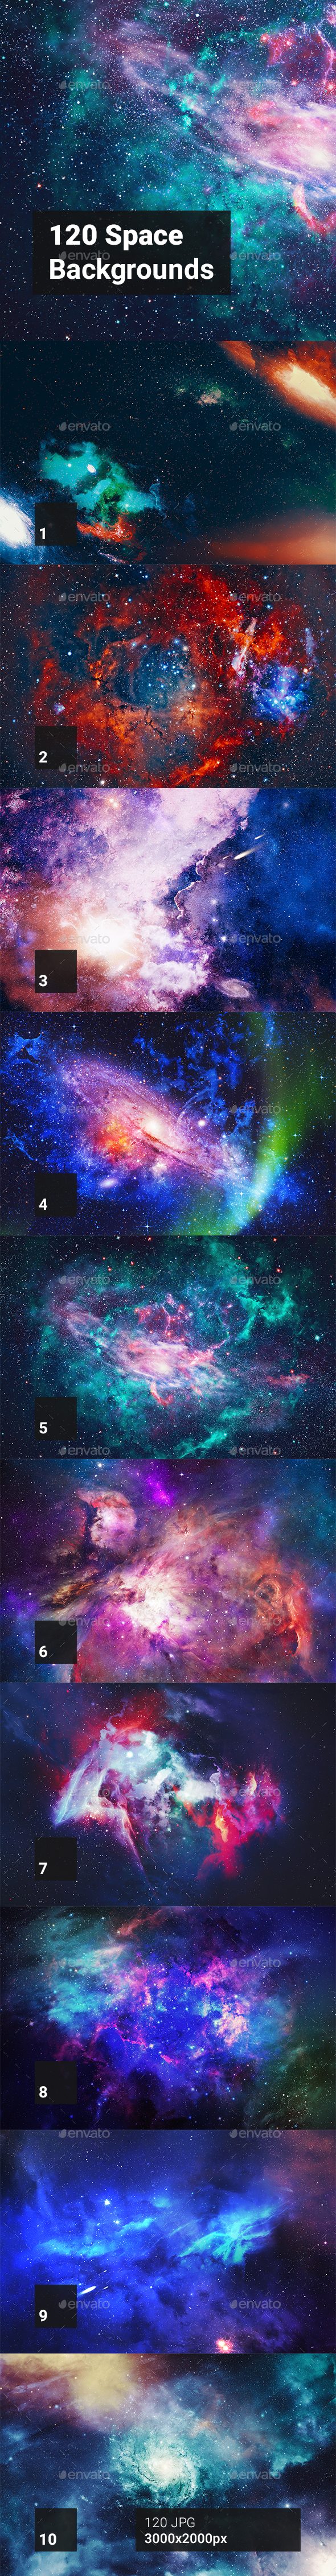 120 Space Backgrounds - Abstract Backgrounds